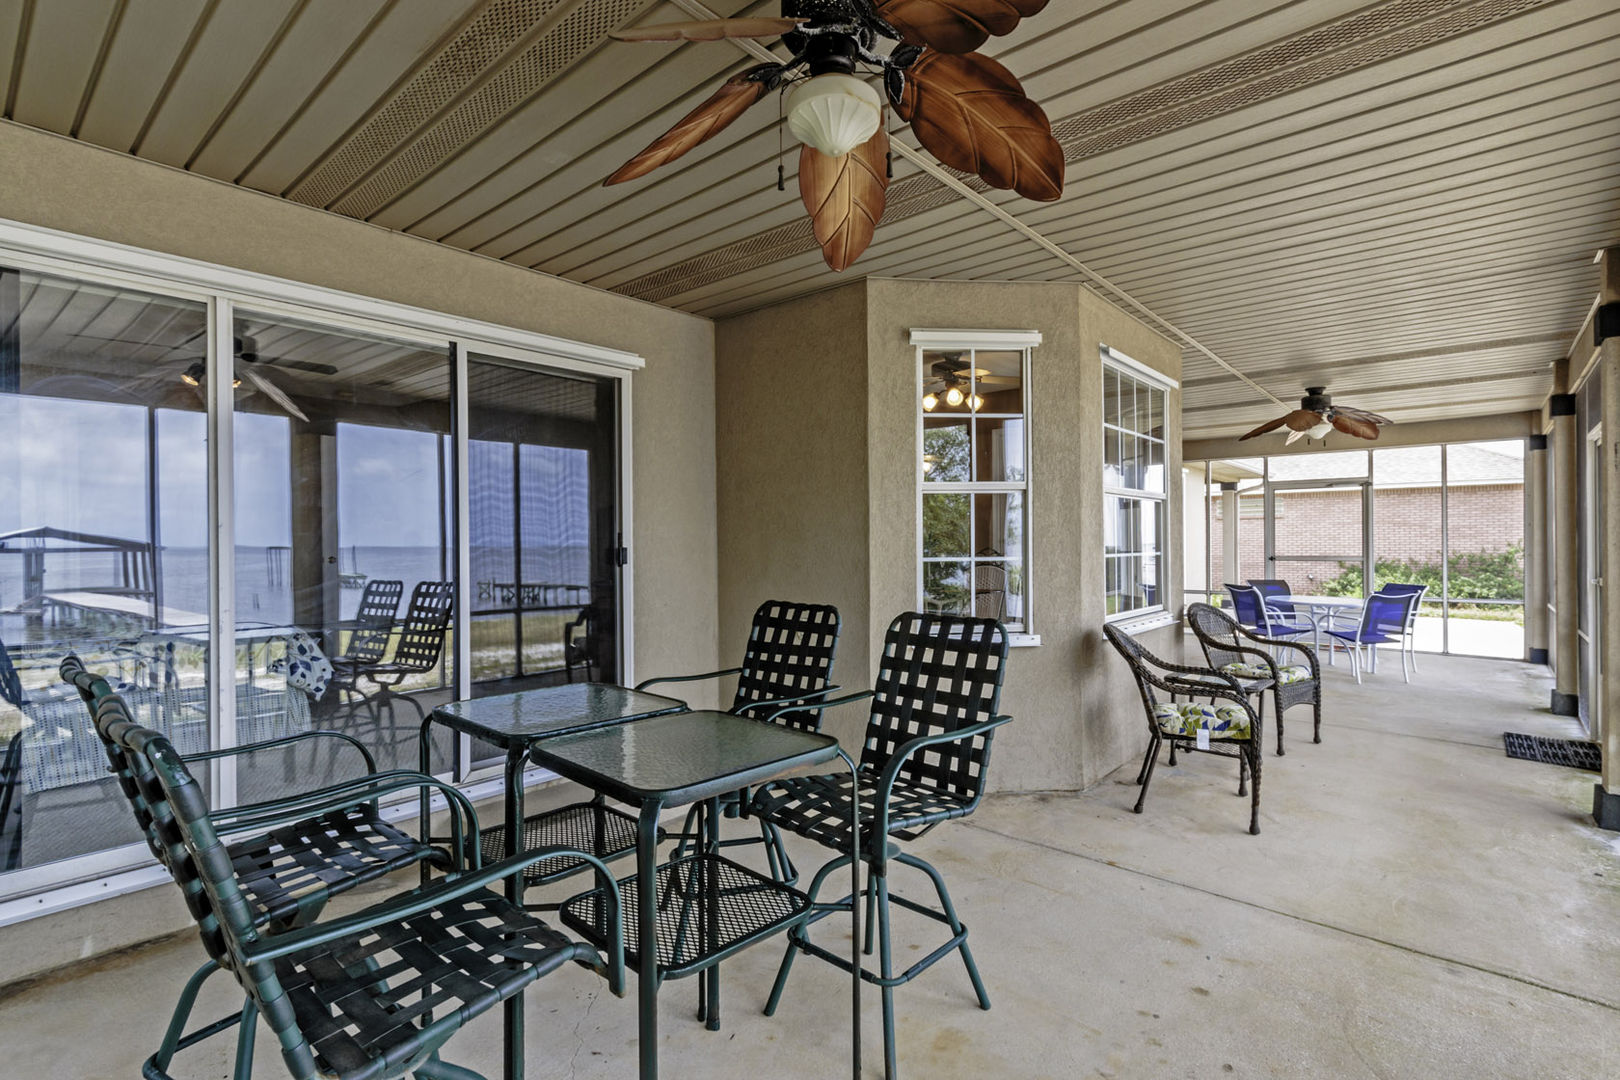 Another view of the spacious screened in porch and its seating.